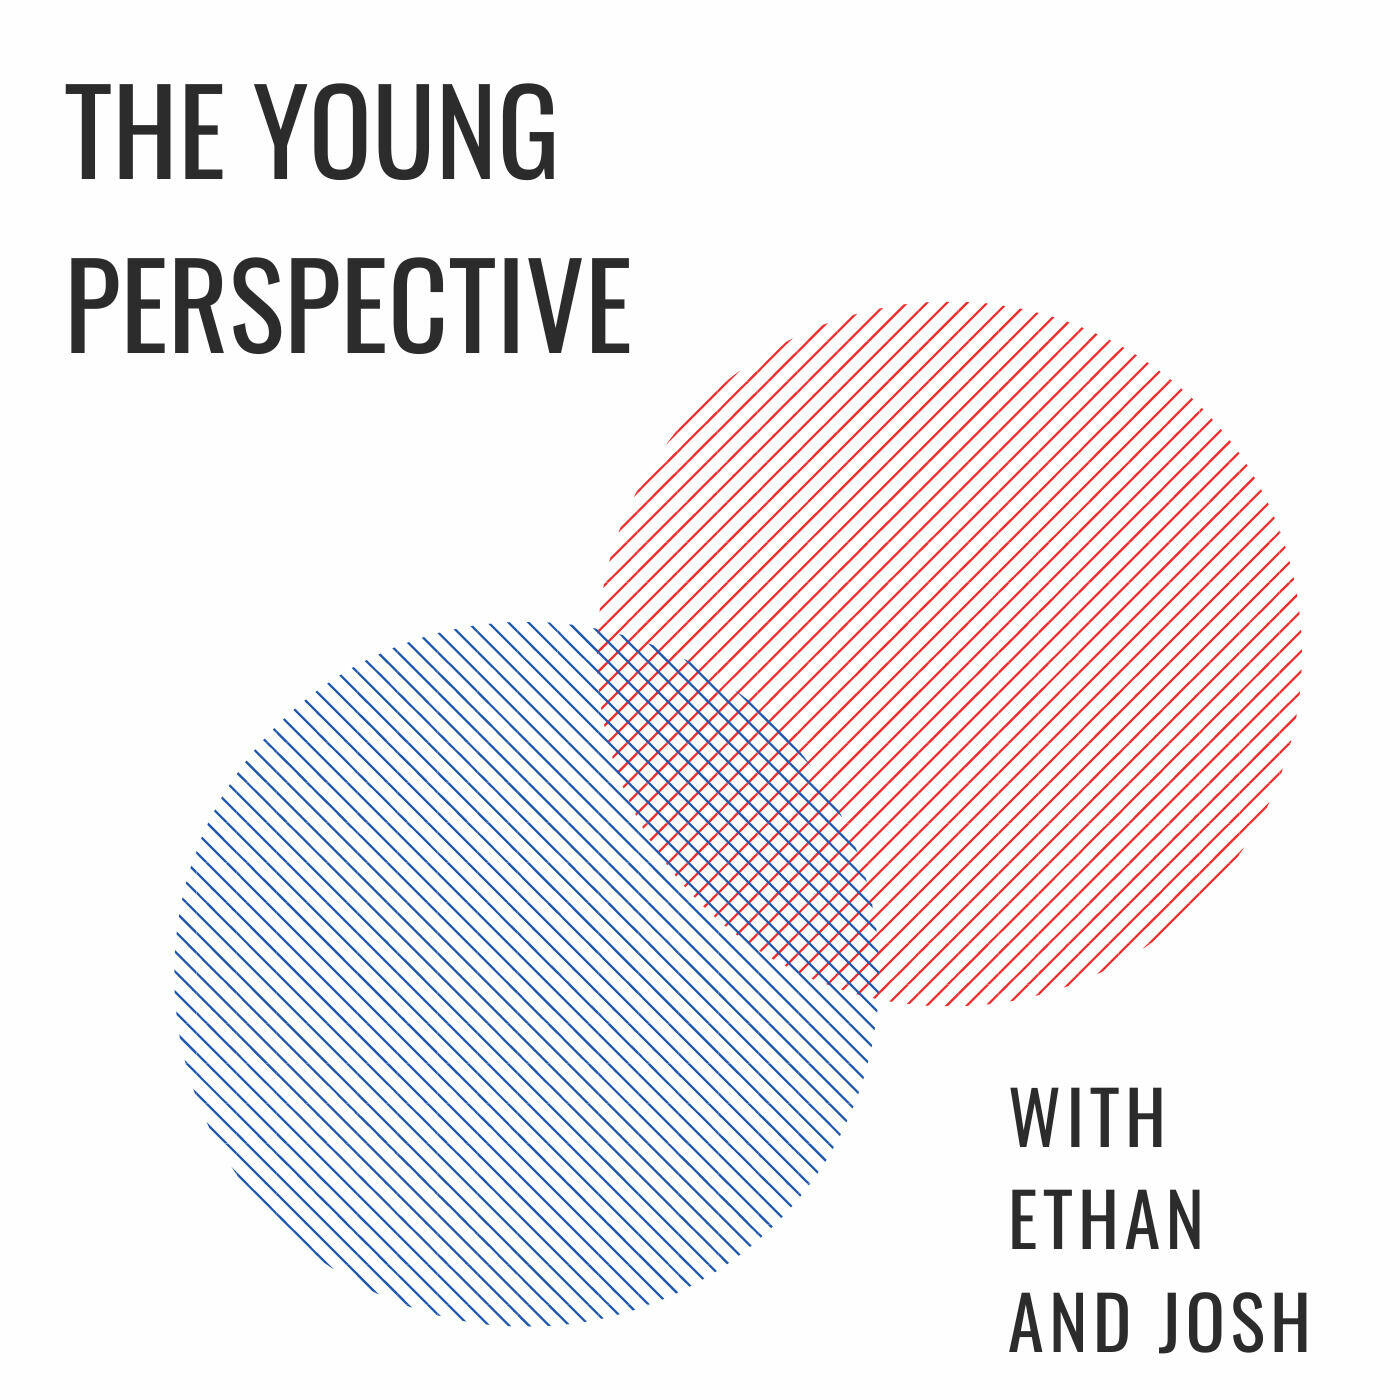 The Young Perspective